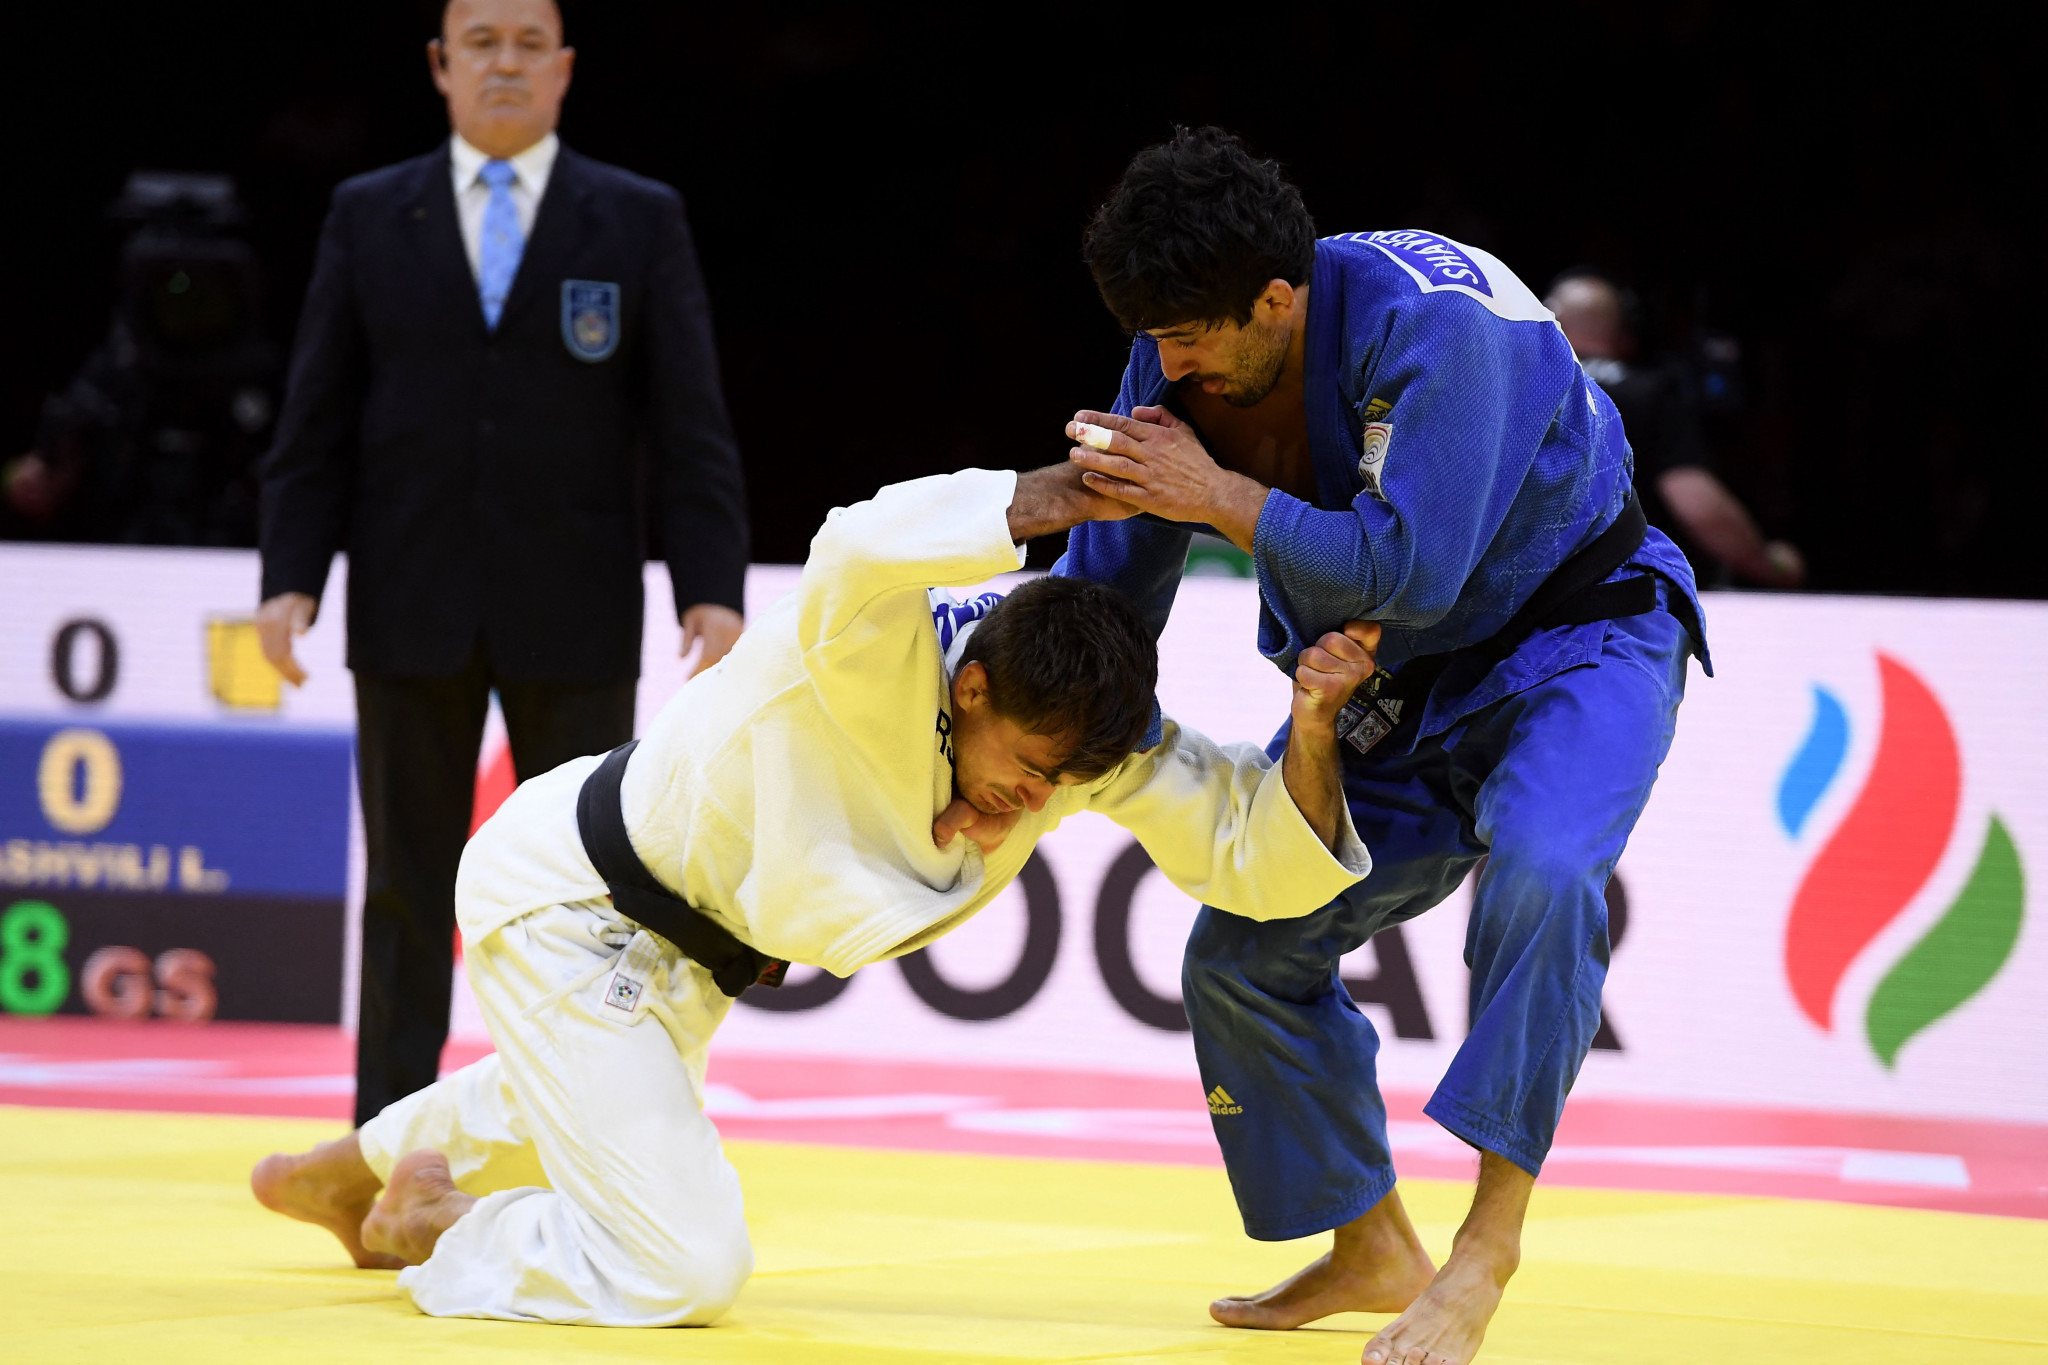 IJF World Championships: Day three of competition